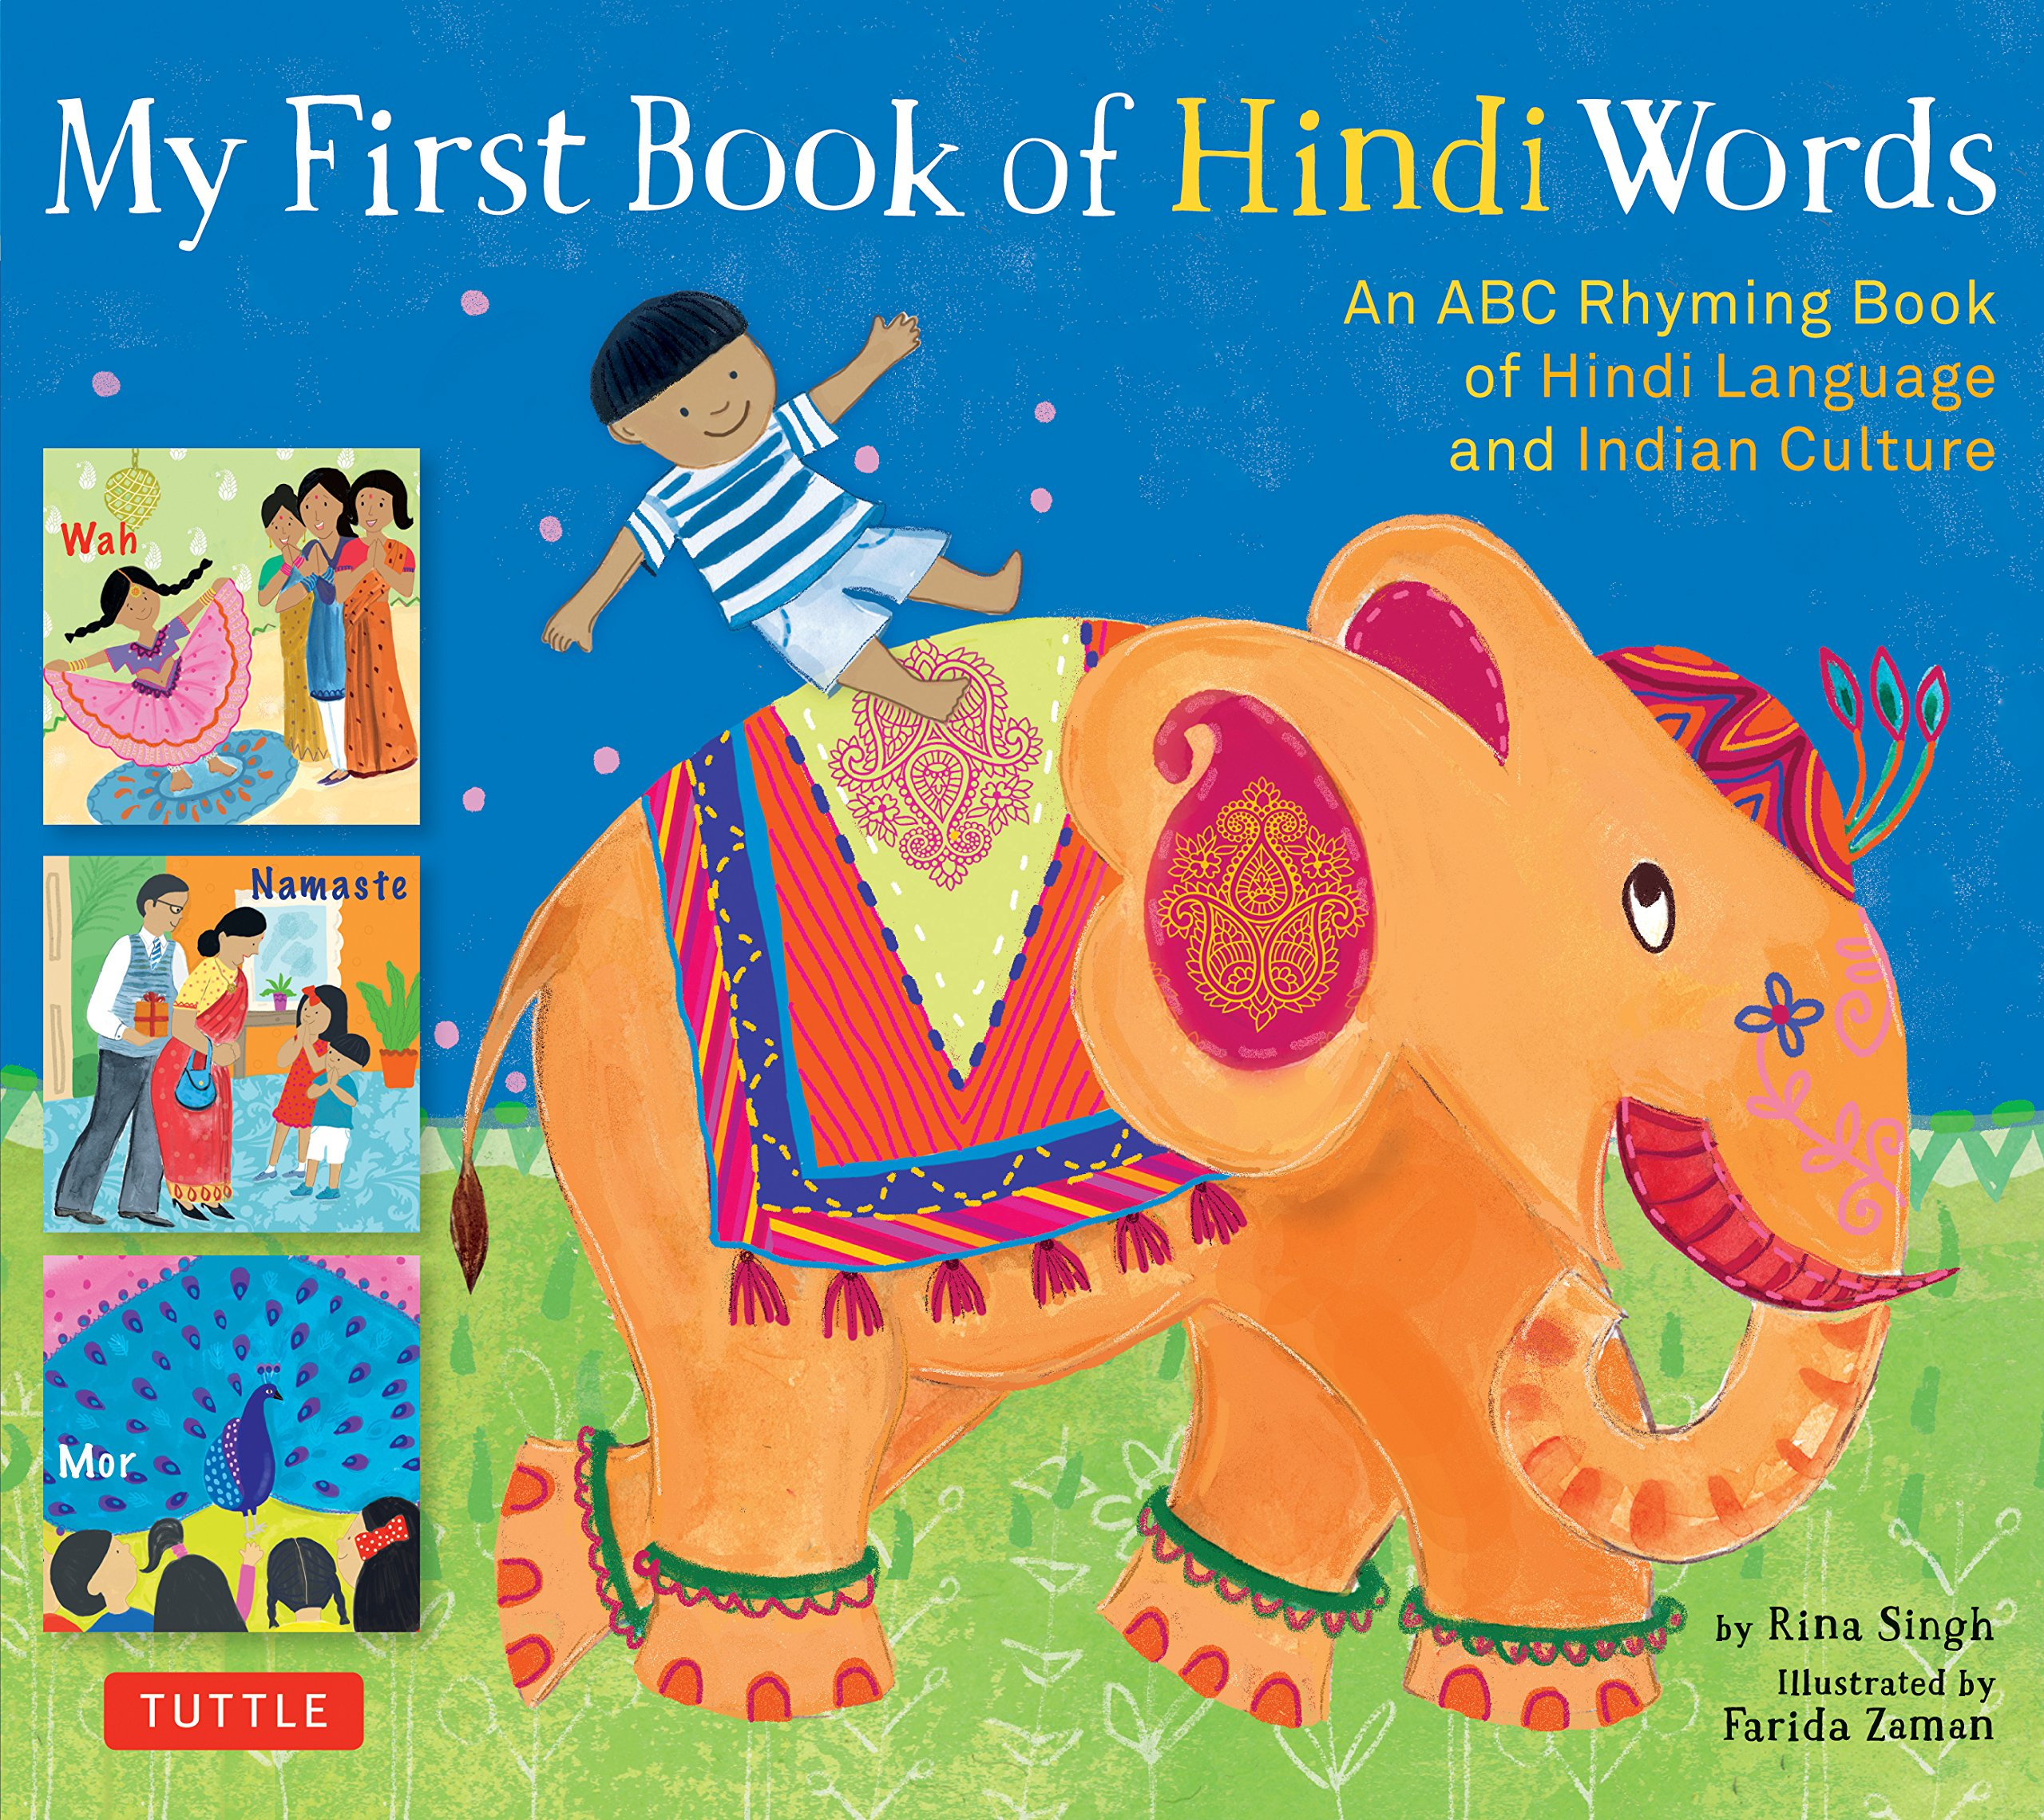 Download My First Book of Hindi Words: An ABC Rhyming Book of Hindi Language and Indian Culture (My First Book Of...-miscellaneous/English) pdf